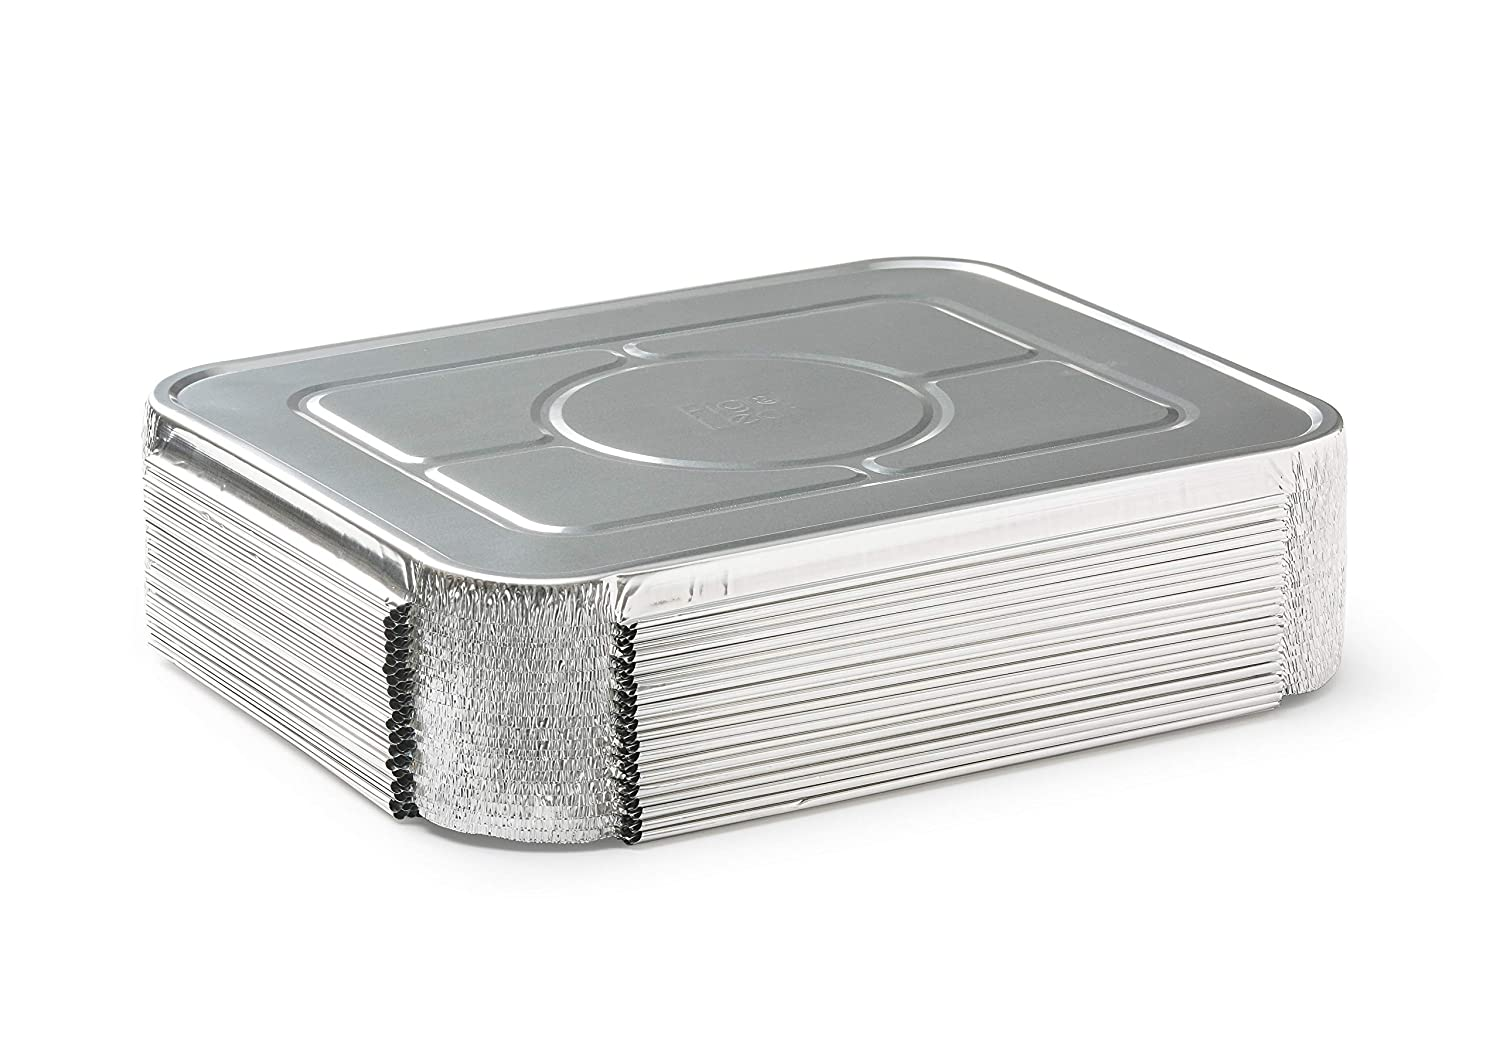 "Fig & Leaf (30 Pack) Premium Lids for Lasagna Pans 14"" x 10"" x 3"" Heavy Duty l 26 Gauge l Top Baker's Choice Disposable Aluminum Foil for Roasting Potluck Reheating Catering Party BBQ Baking"